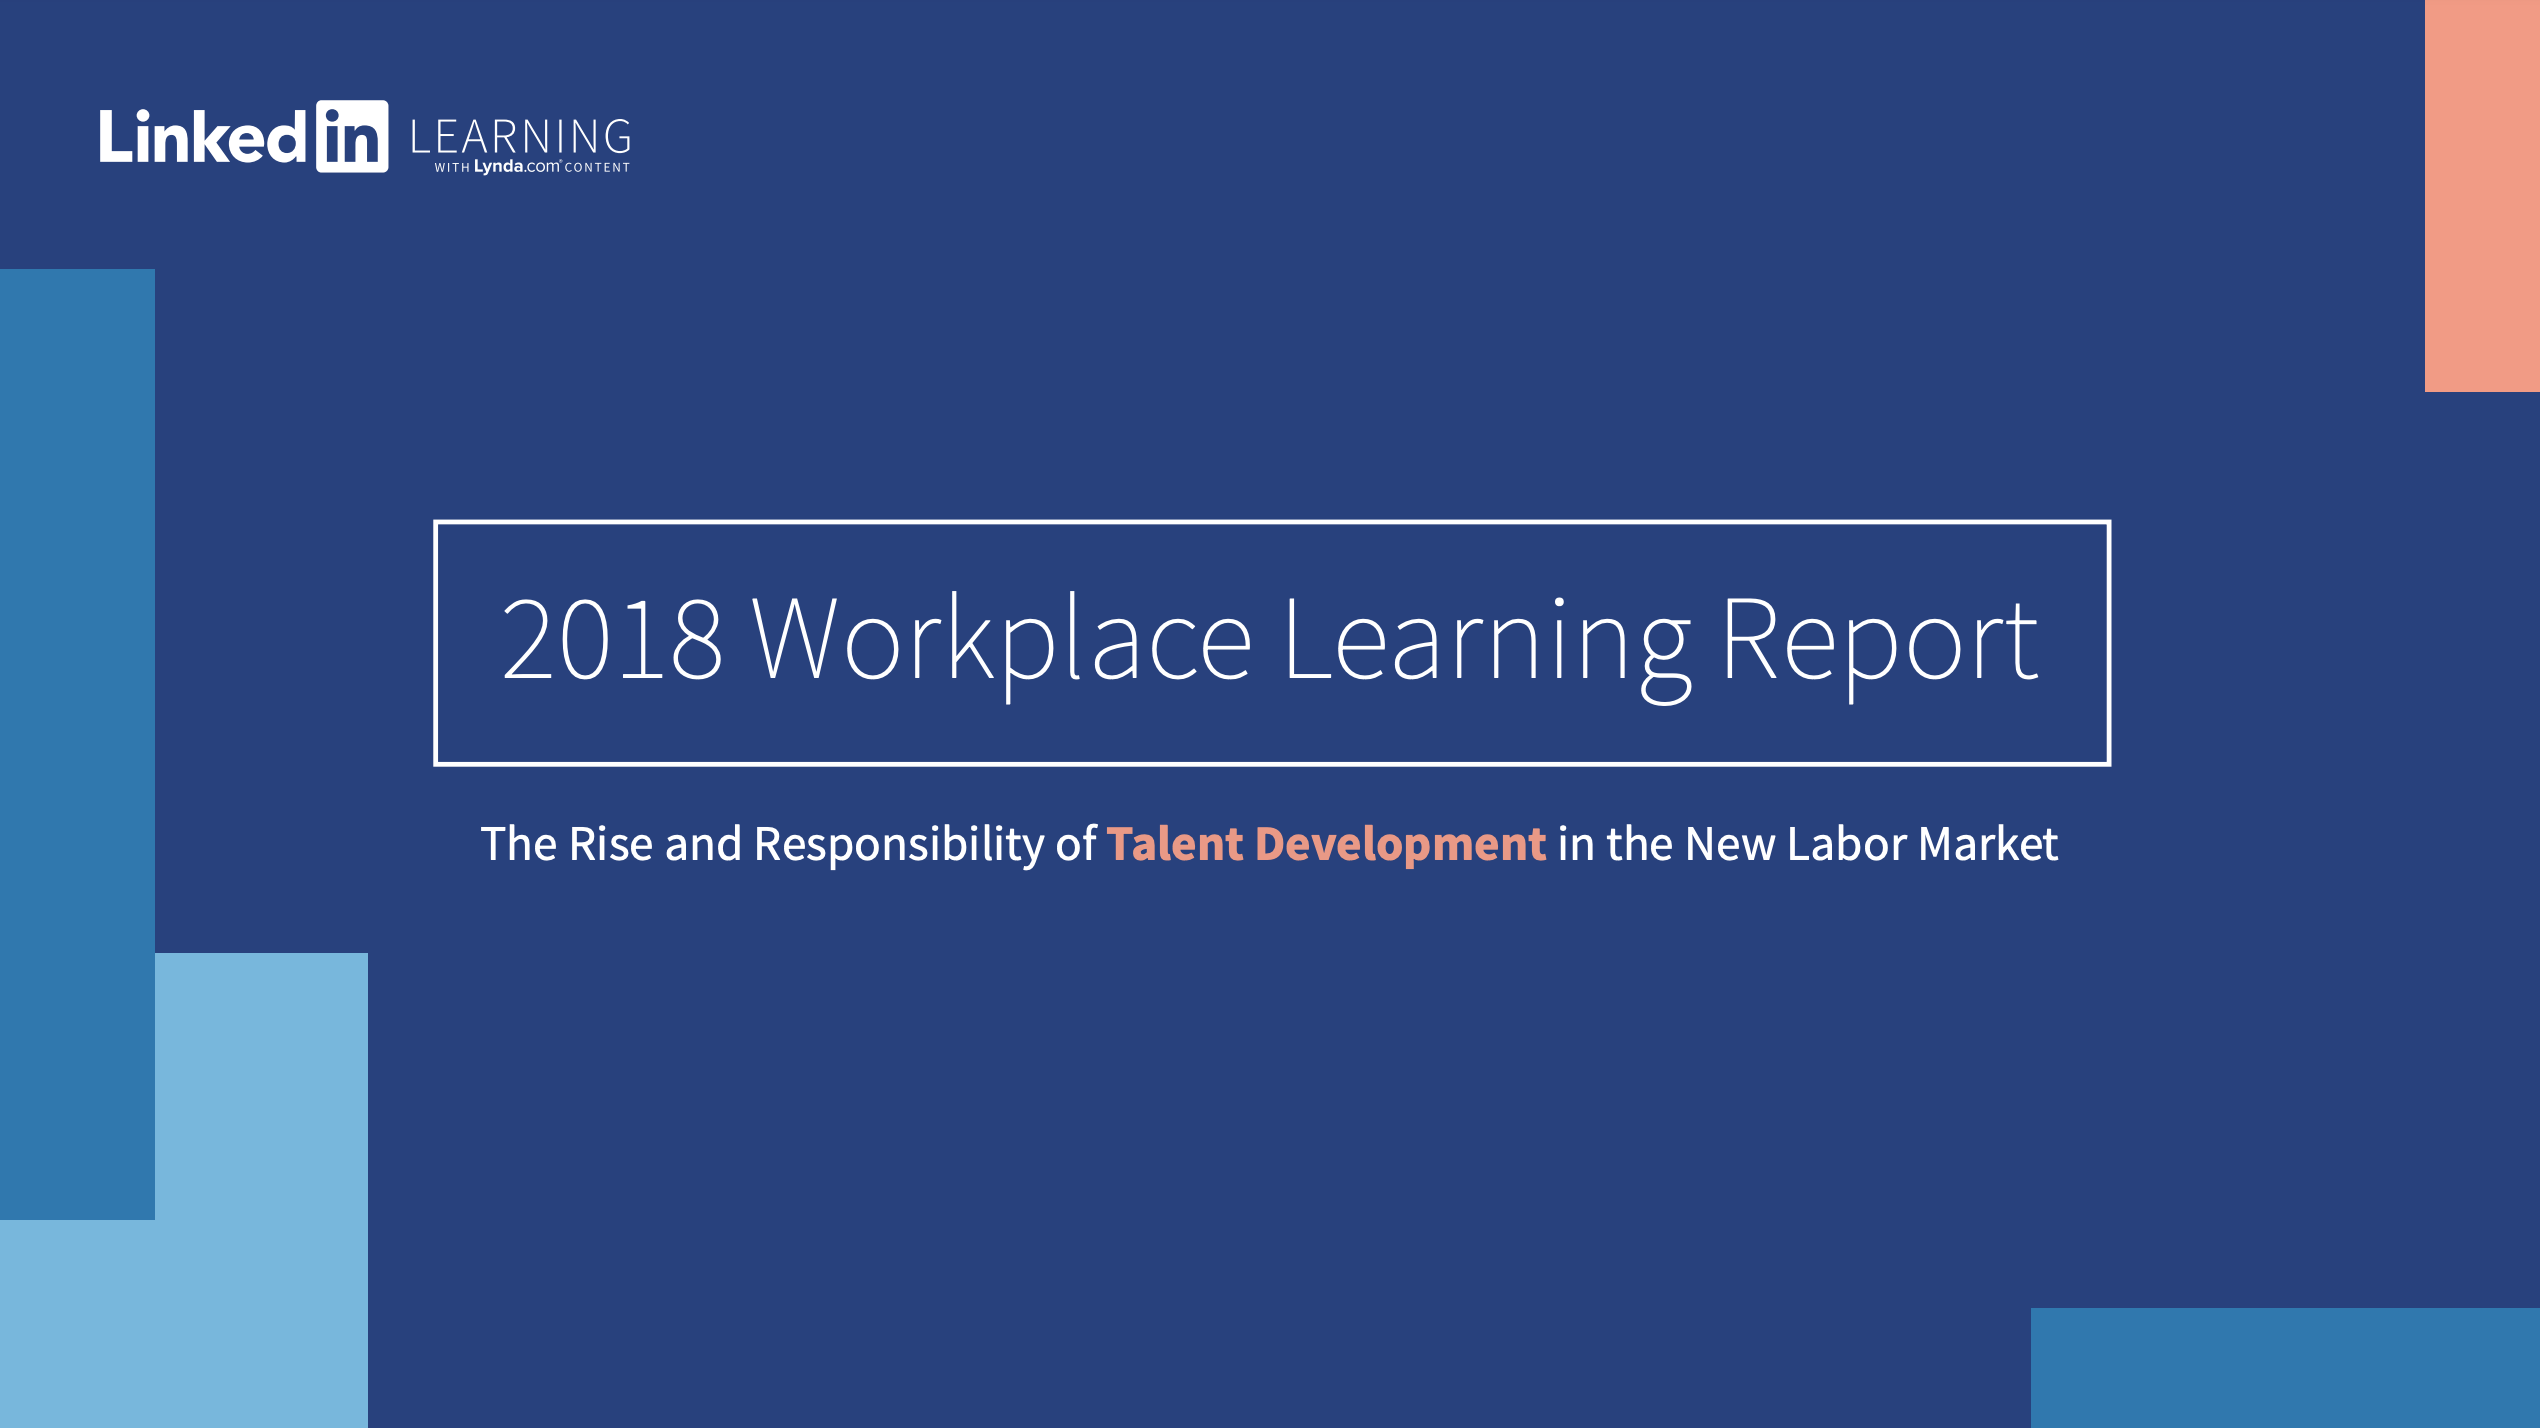 2018 Workplace Learning Report | Source: LinkedIn